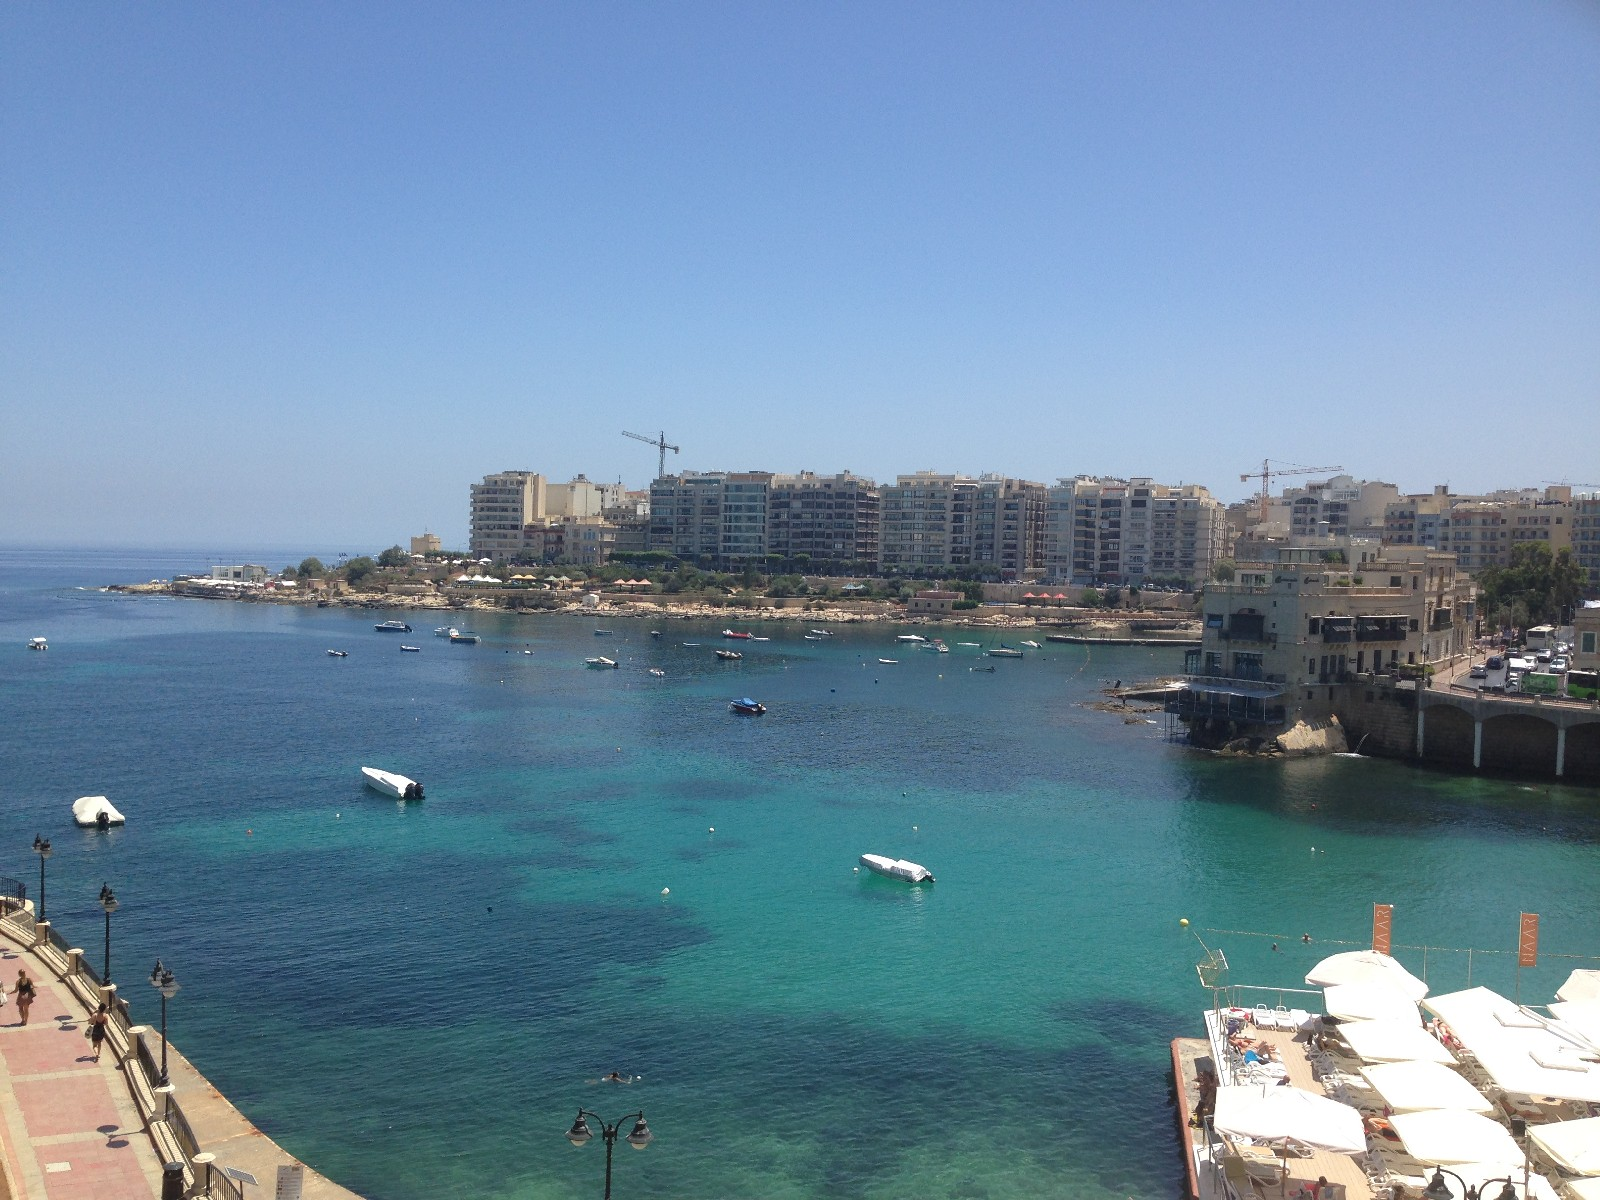 Apartment for Sale at Seaview Apartment Other Malta, Cities In Malta Malta